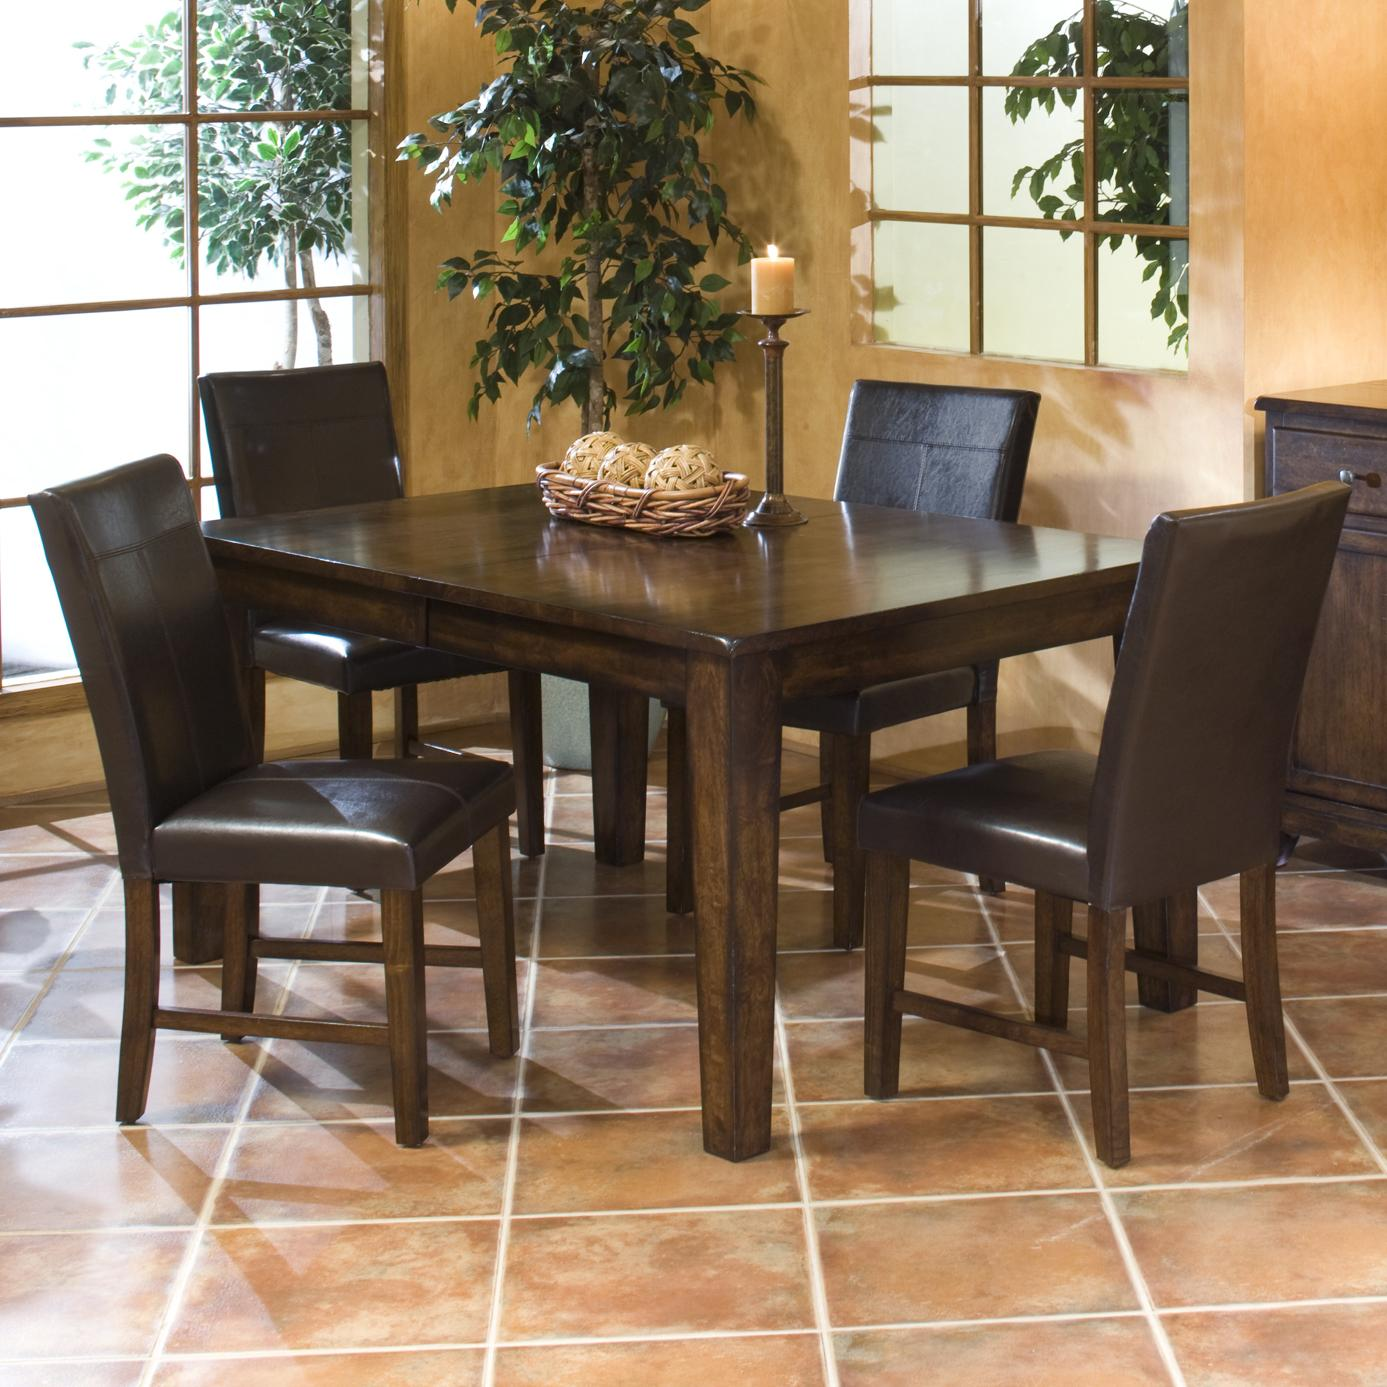 5 Piece Dining Set with Parson's Side Chairs